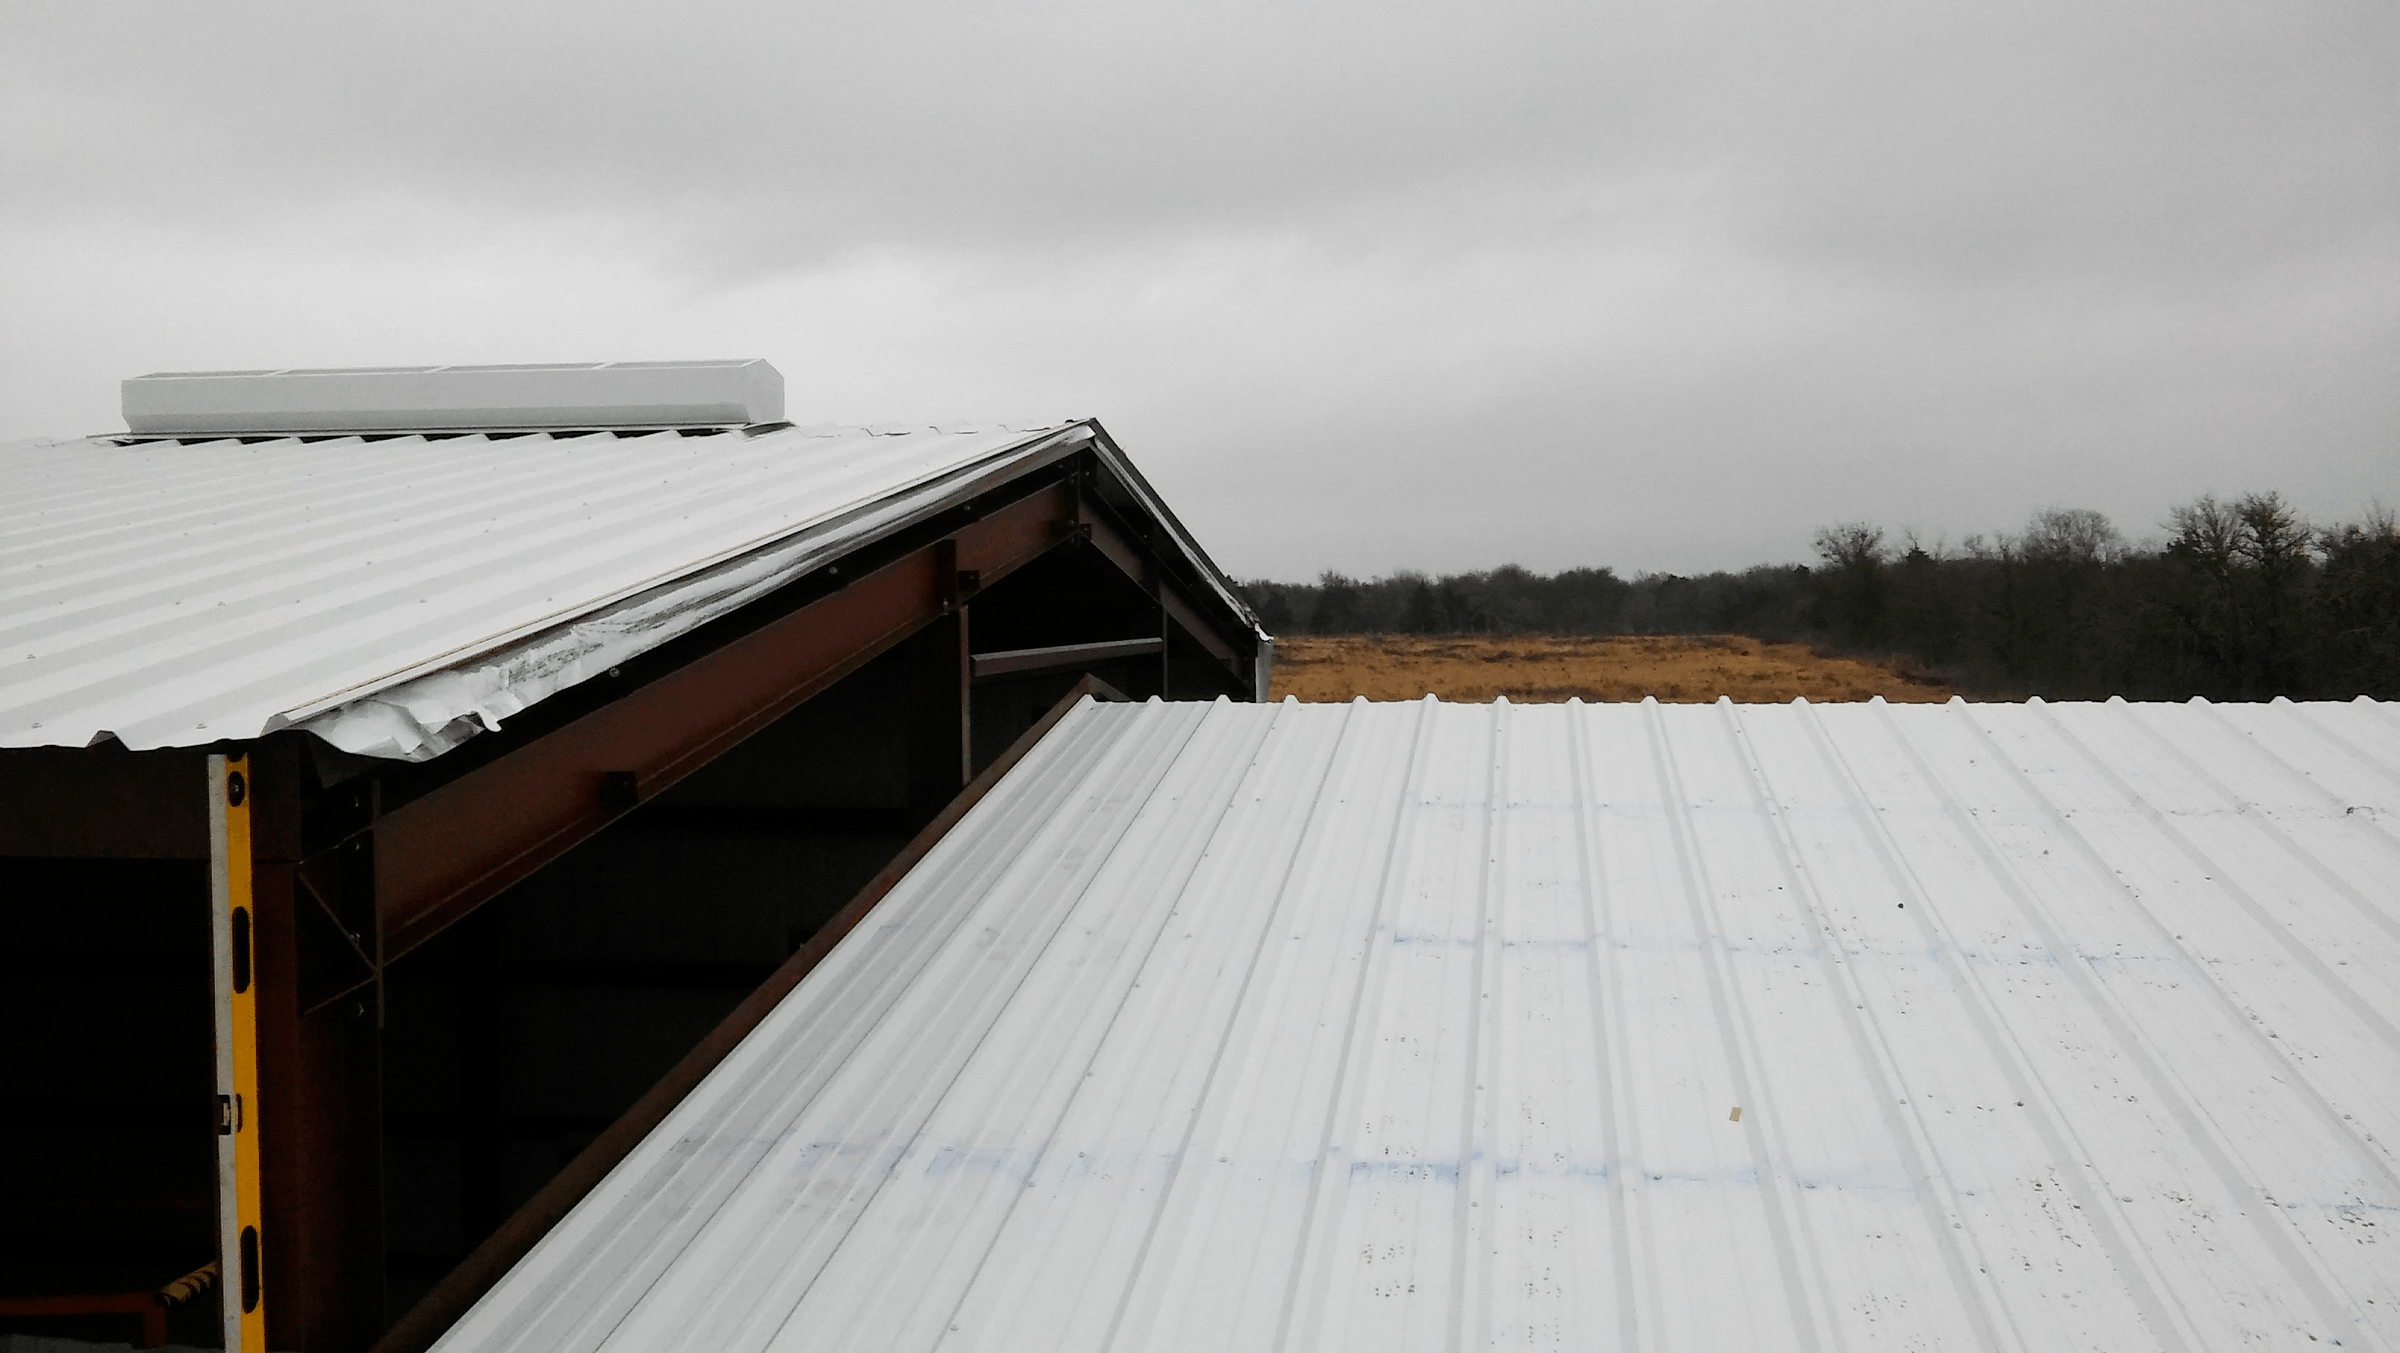 Wash bay roofing going on.